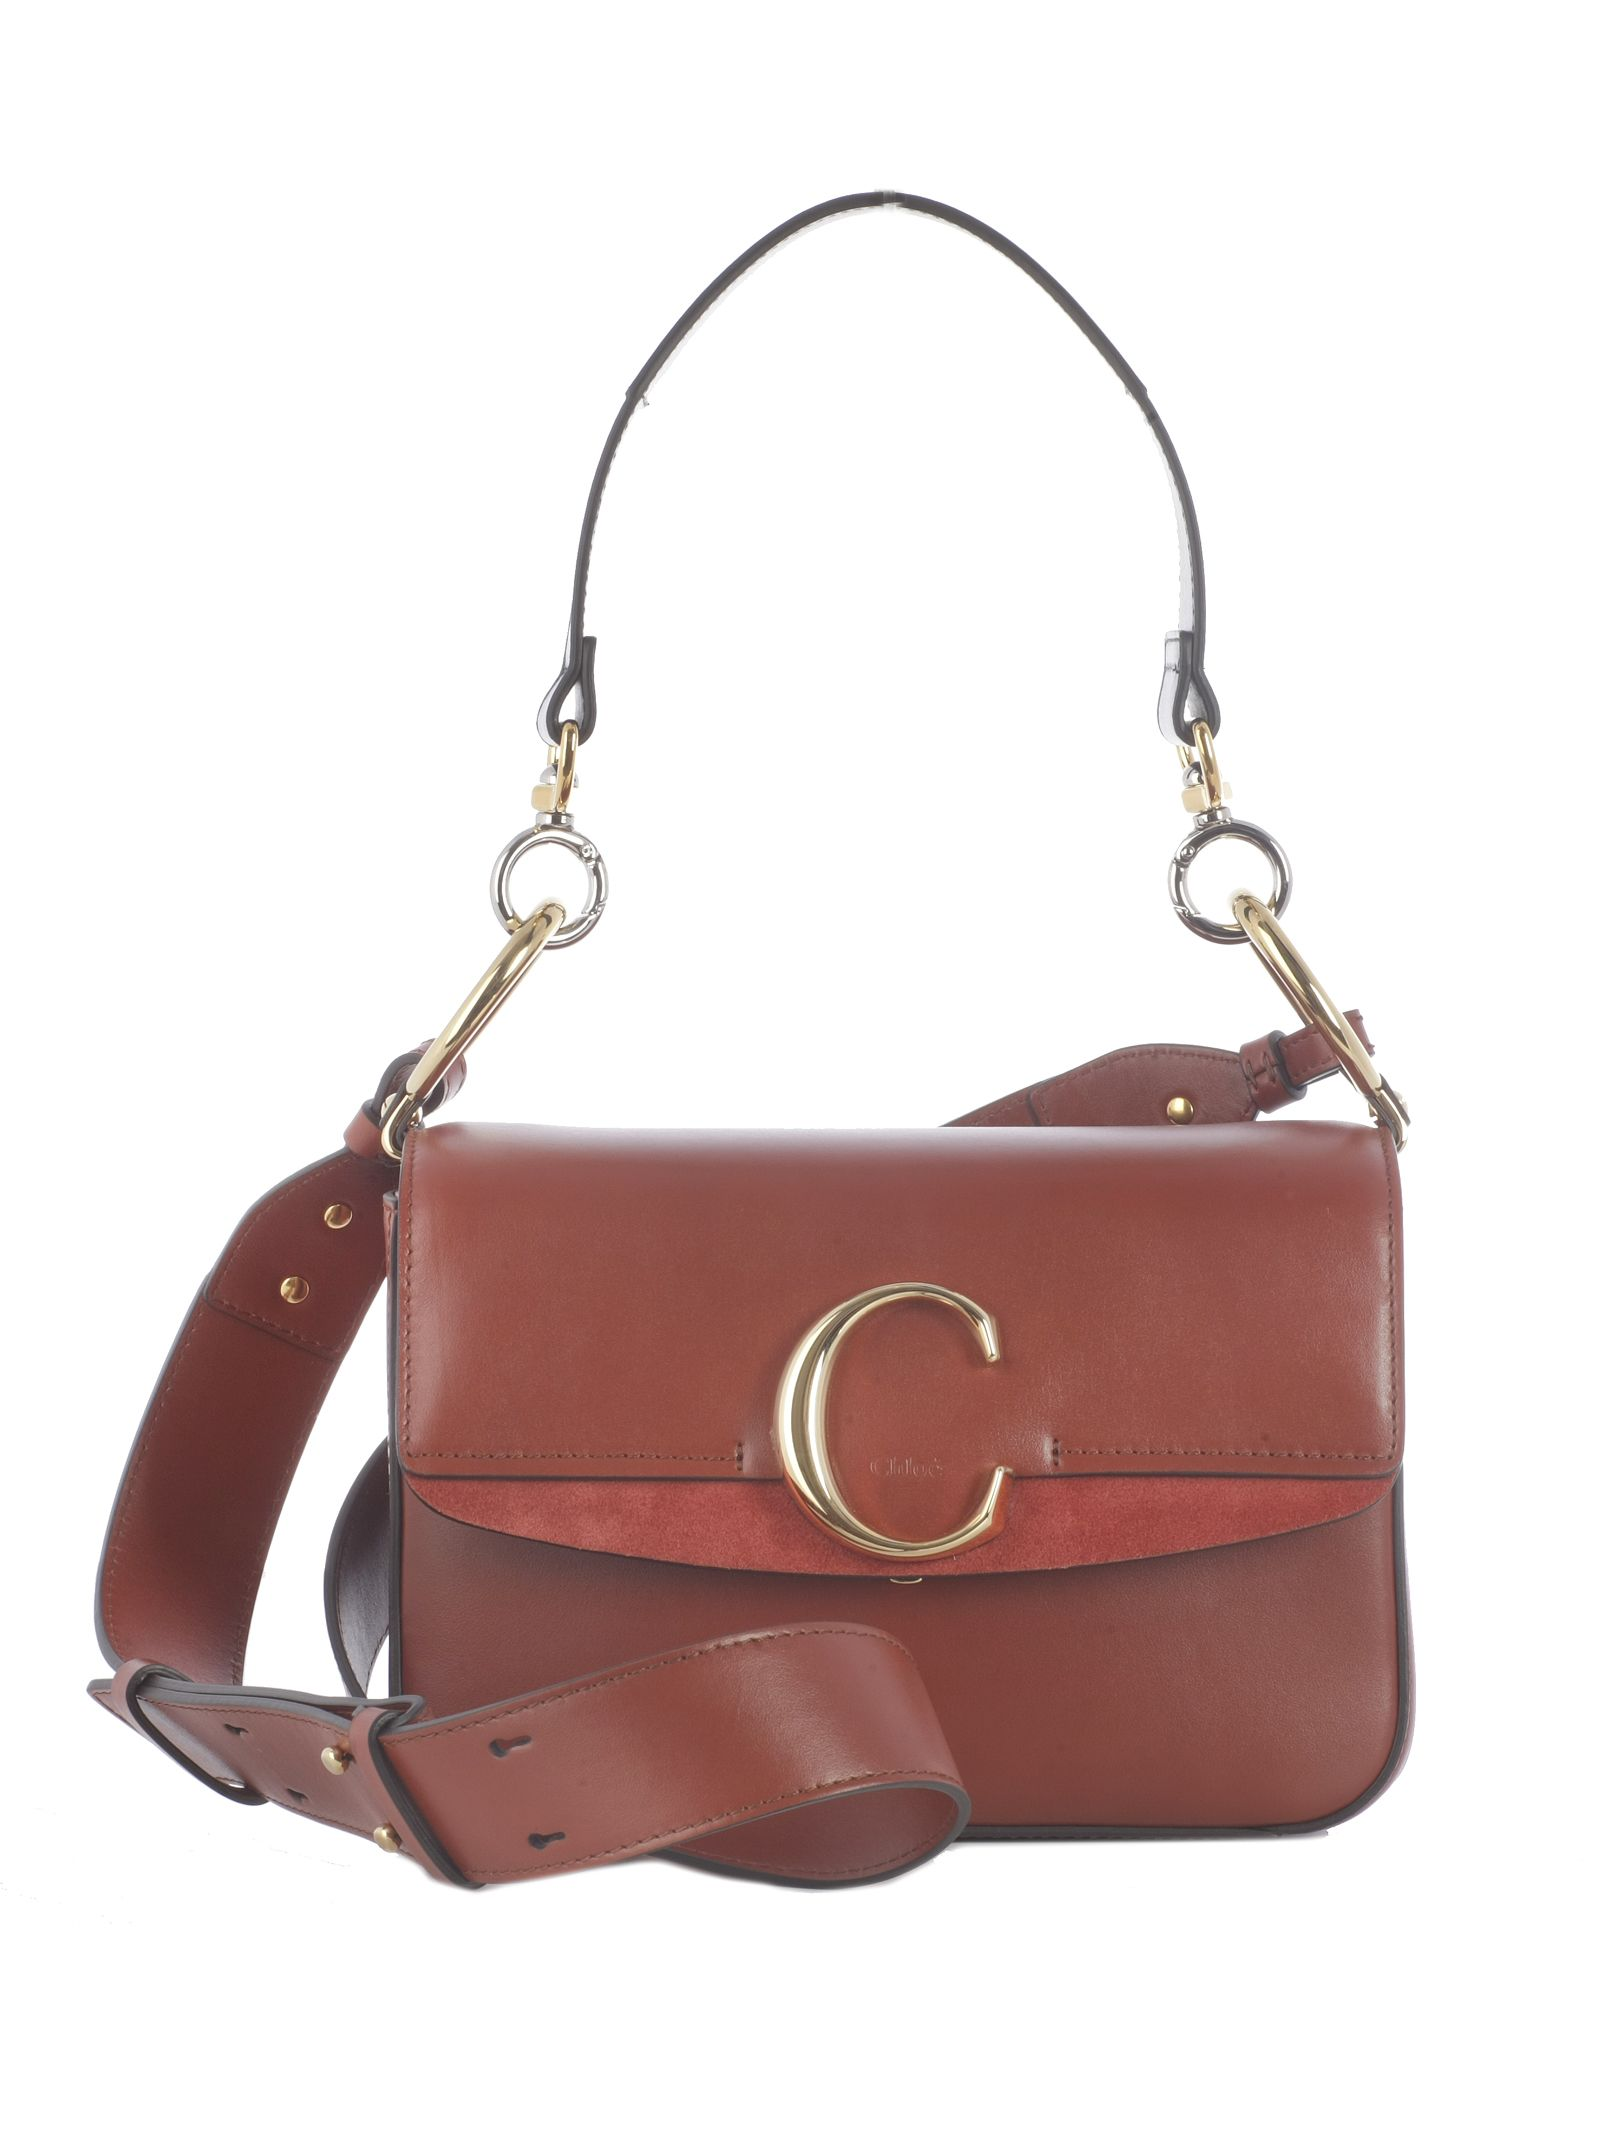 5d7f930804ec Chloé Chloé C Shoulder Bag - S Sepia Brown - 10782348